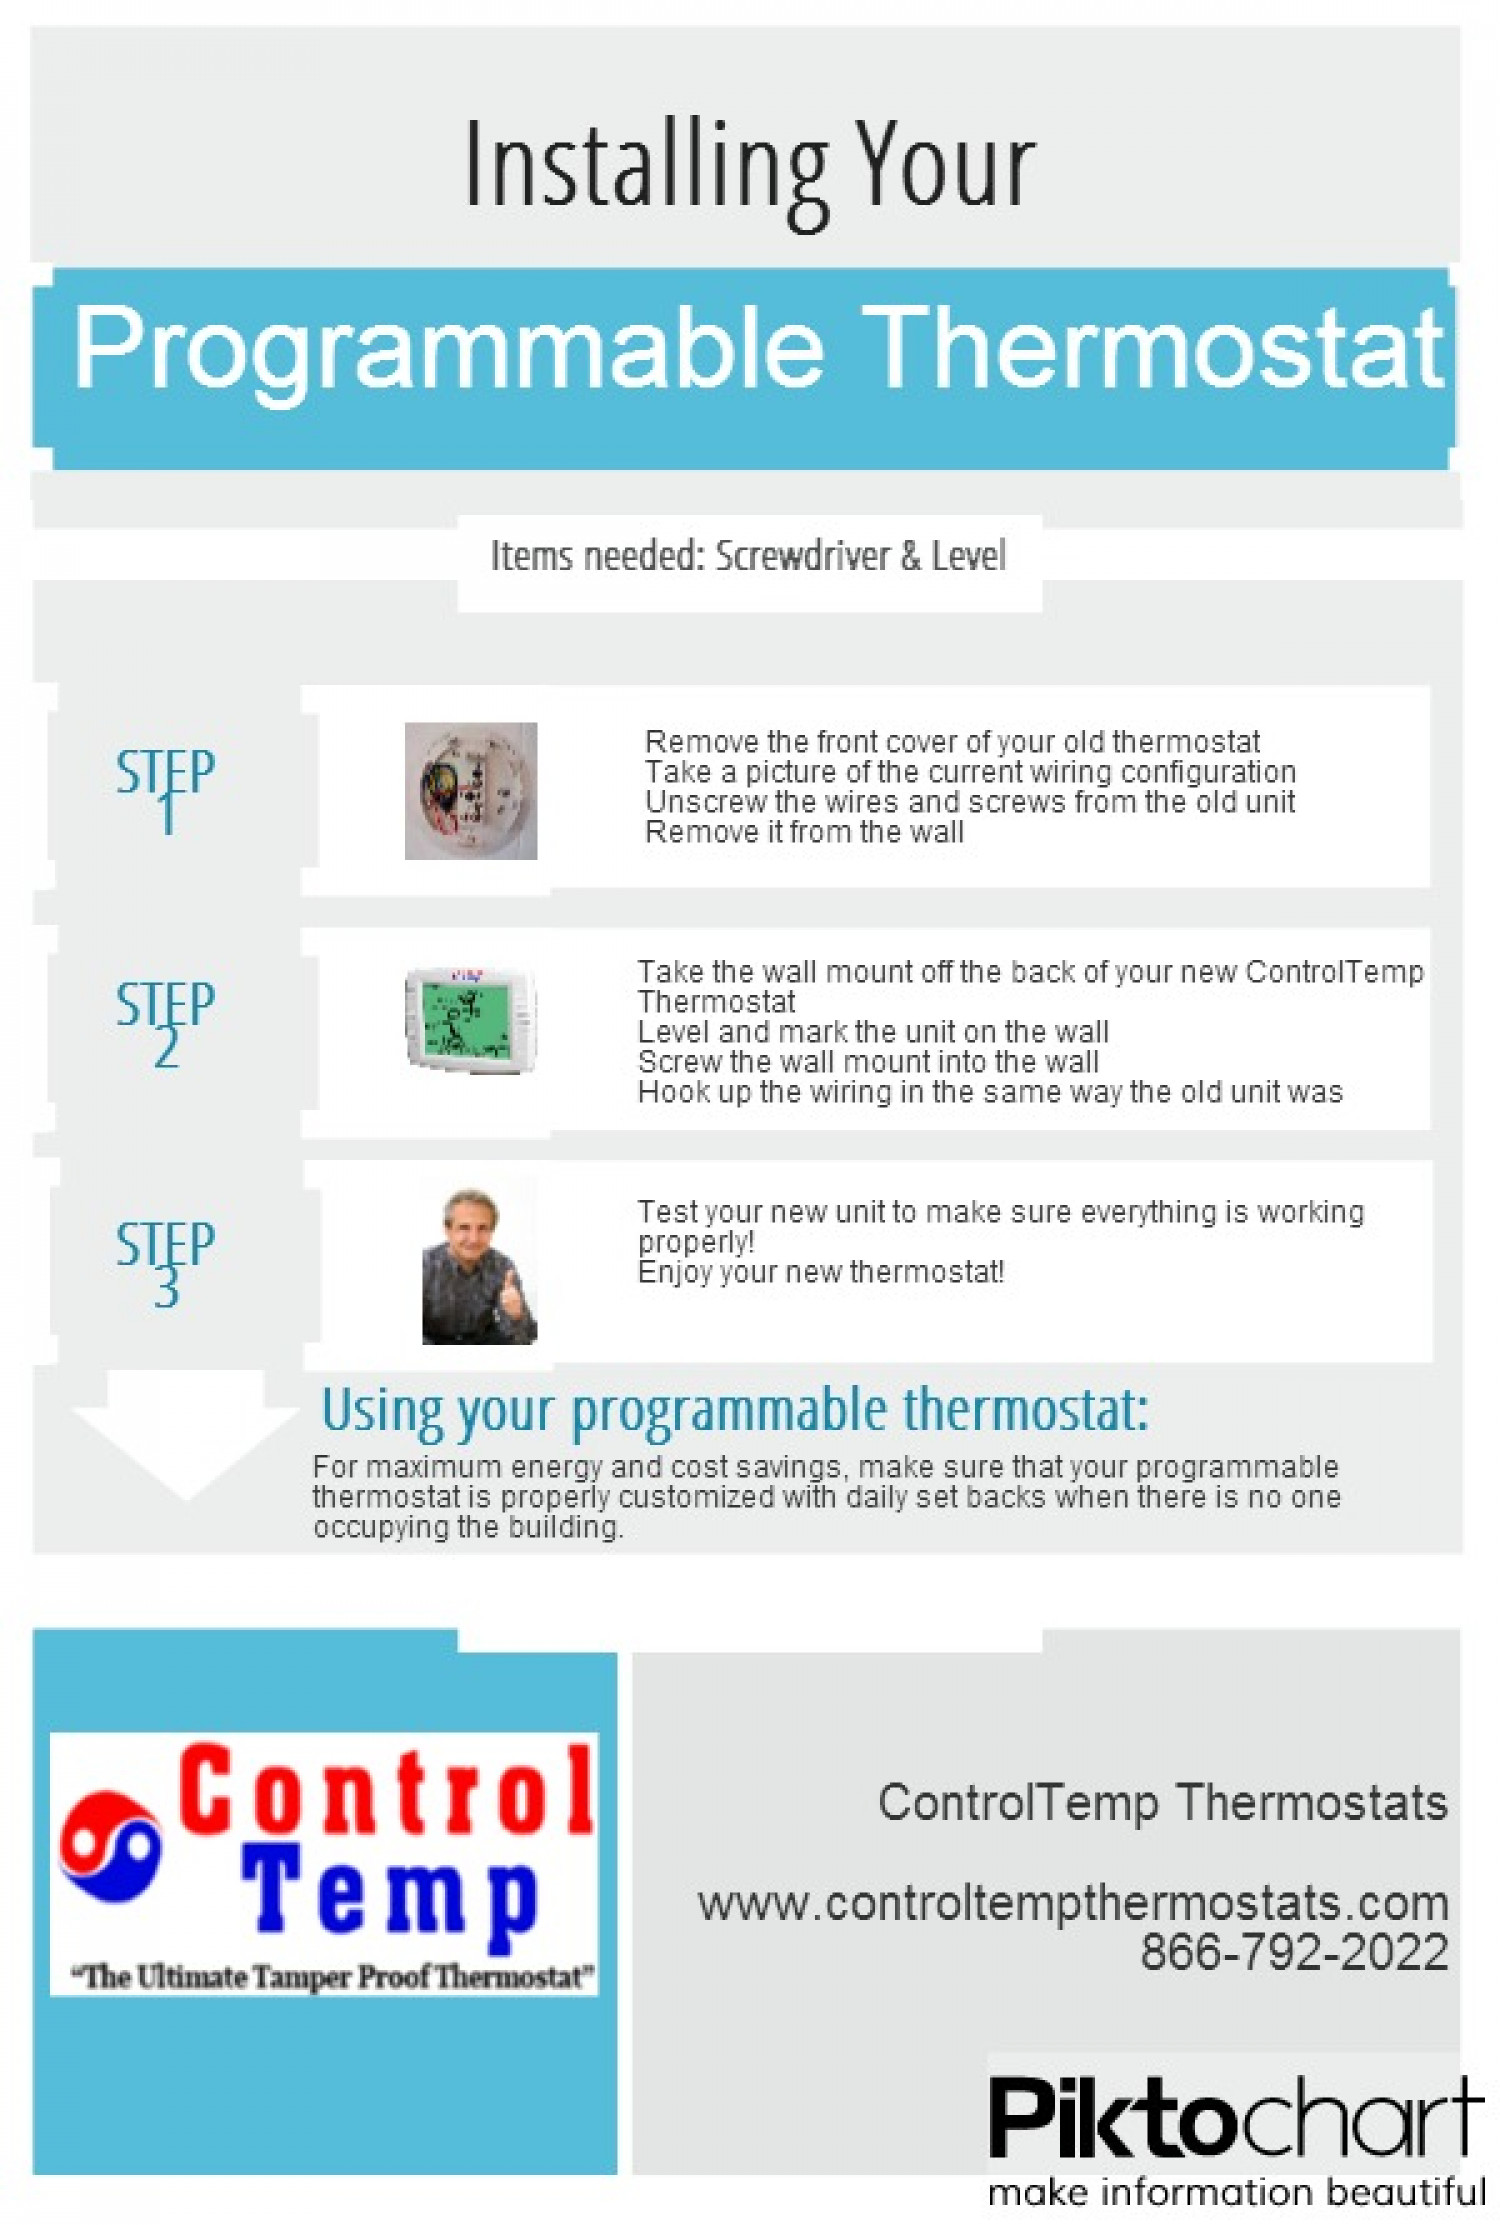 Installing a Programmable Thermostat Infographic